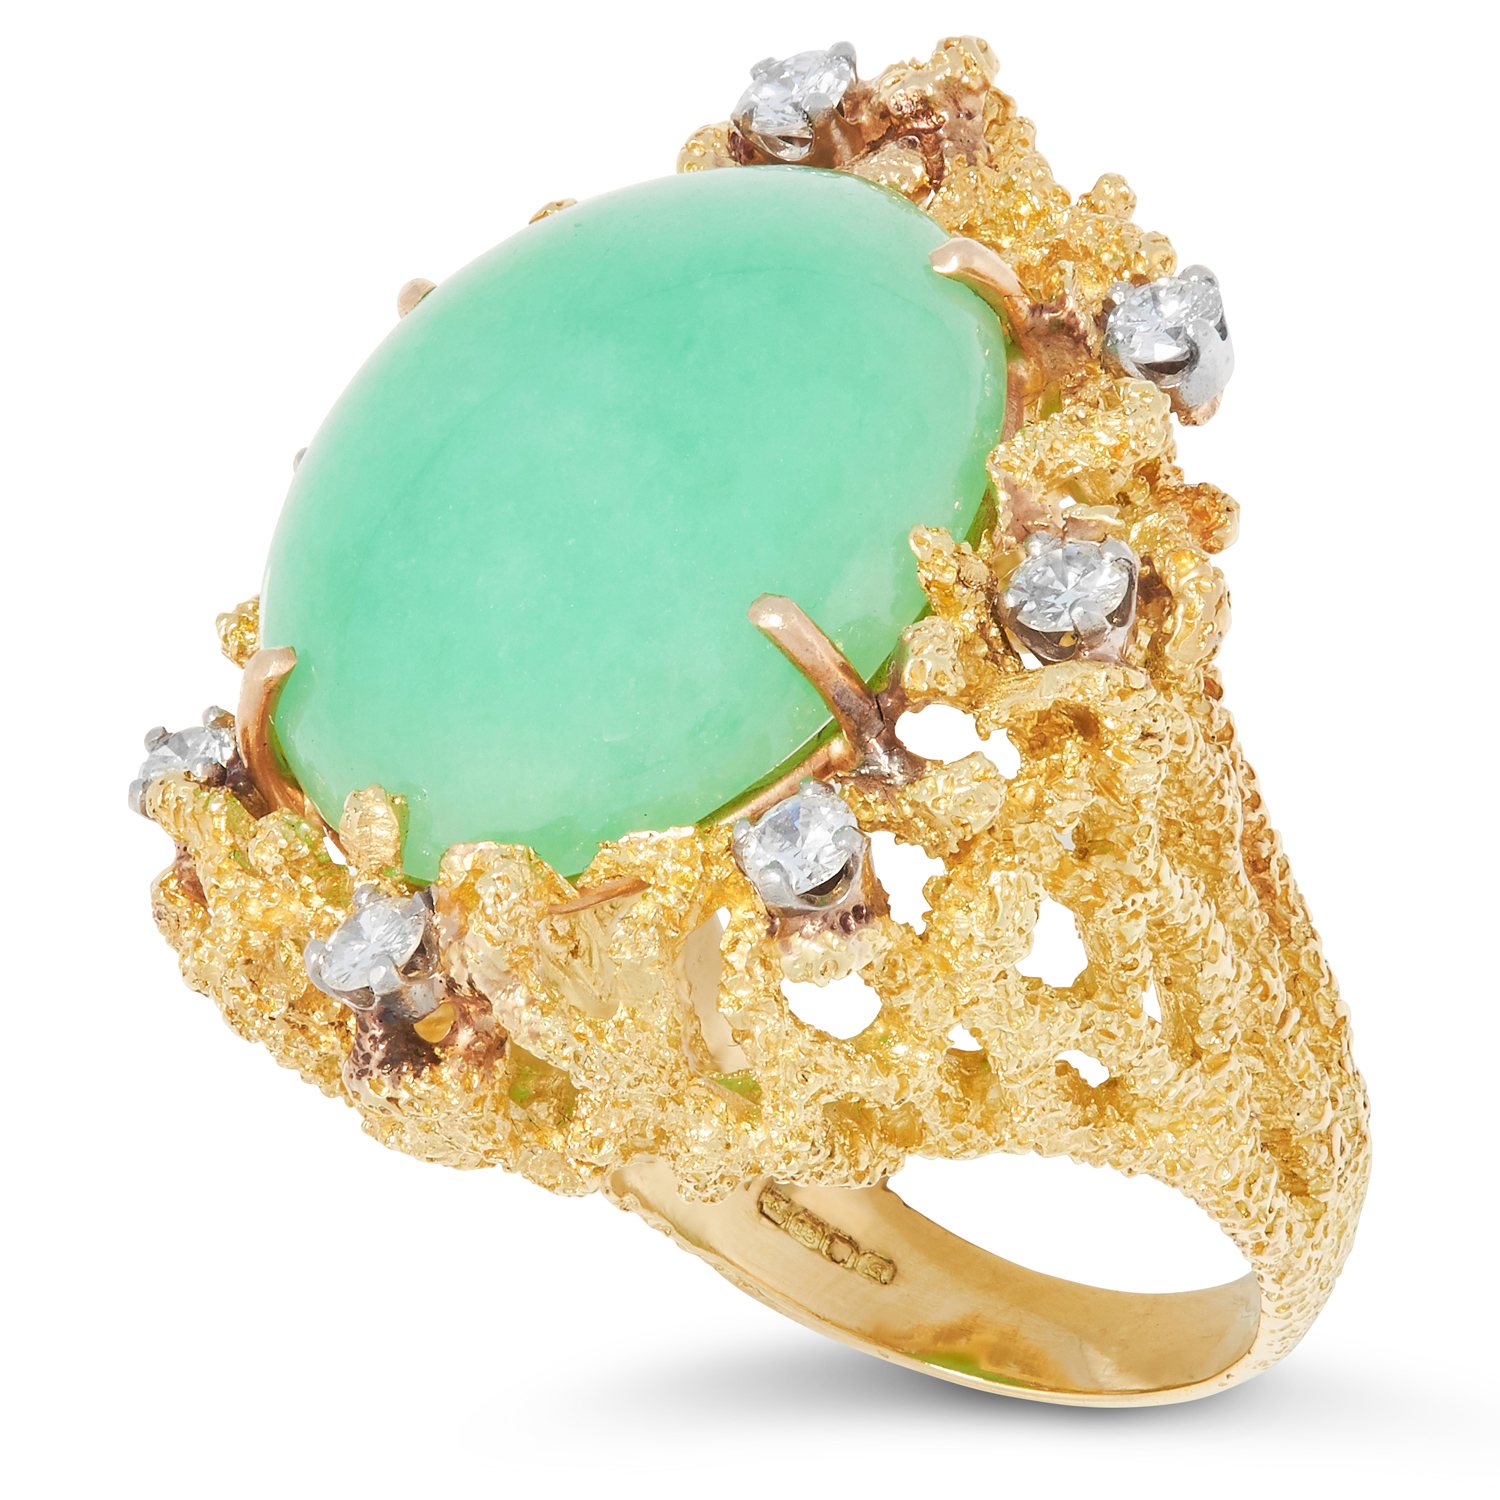 A JADEITE JADE AND DIAMOND RING, CHARLES DE TEMPLE 1973 of abstract naturalistic design set with - Image 2 of 2